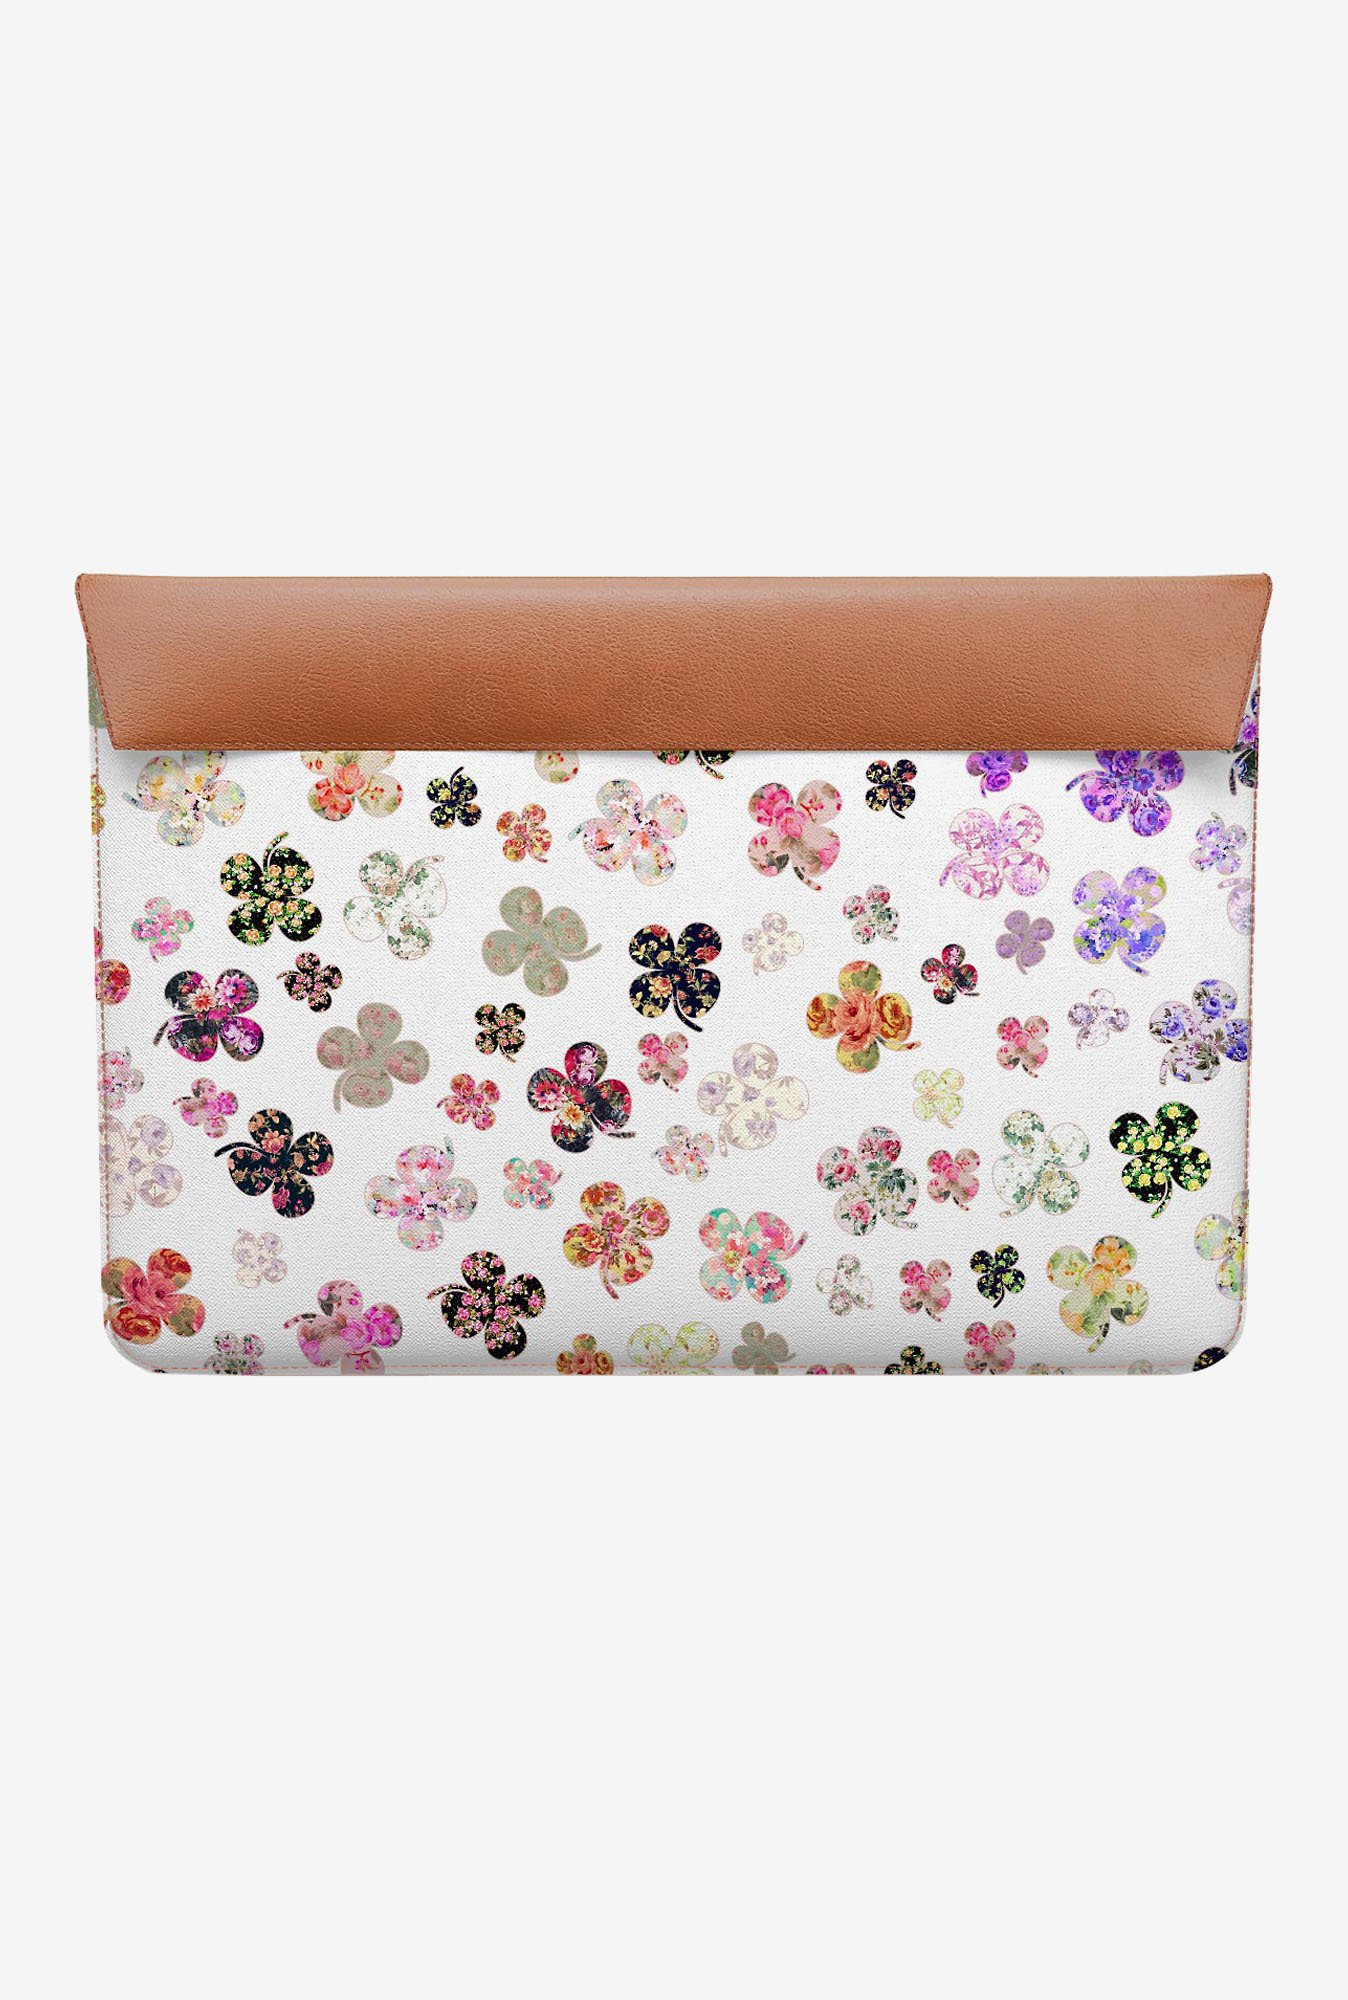 DailyObjects Floral Clovers MacBook Pro 15 Envelope Sleeve